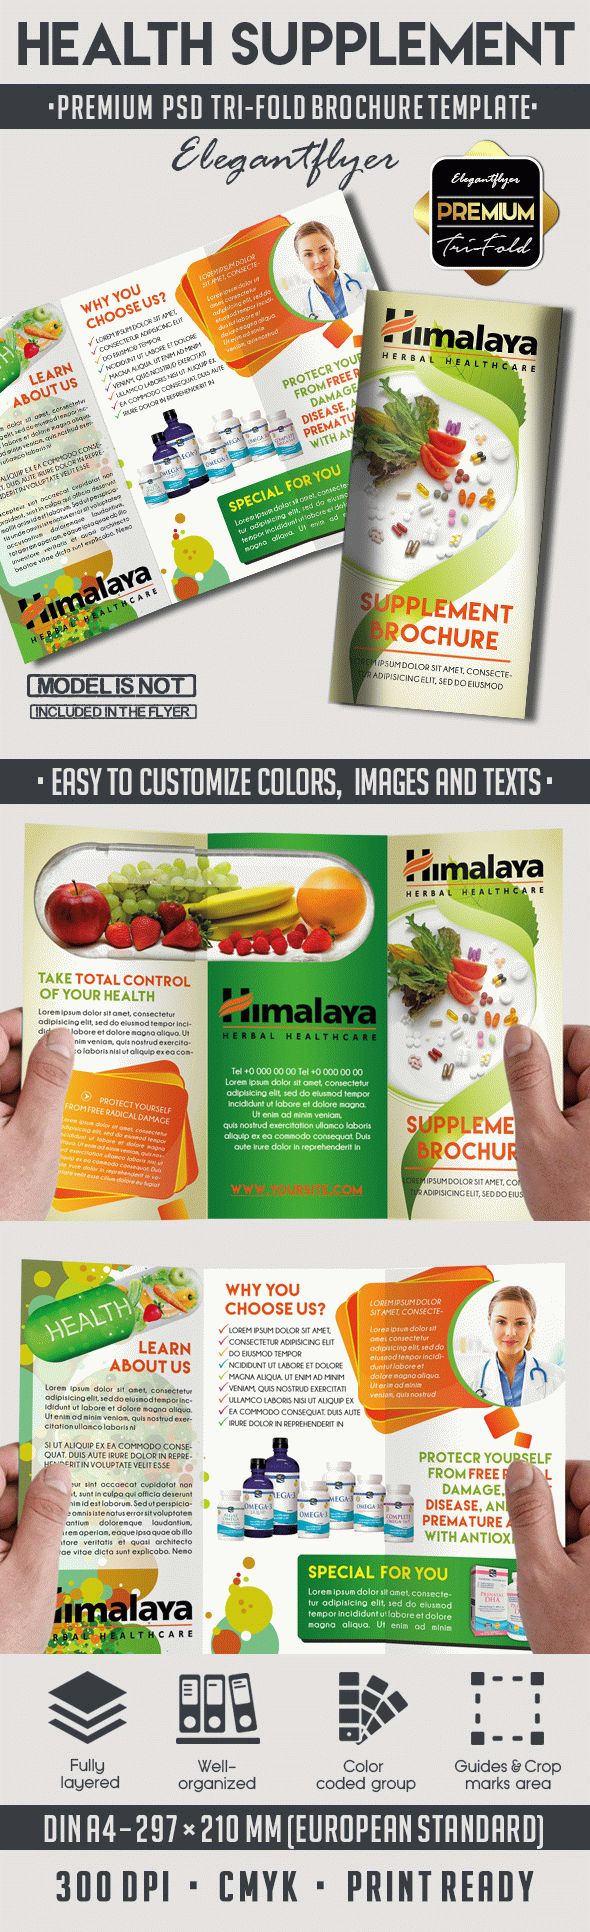 Health Supplement Premium TriFold PSD Brochure Template by – Advertising Brochure Template